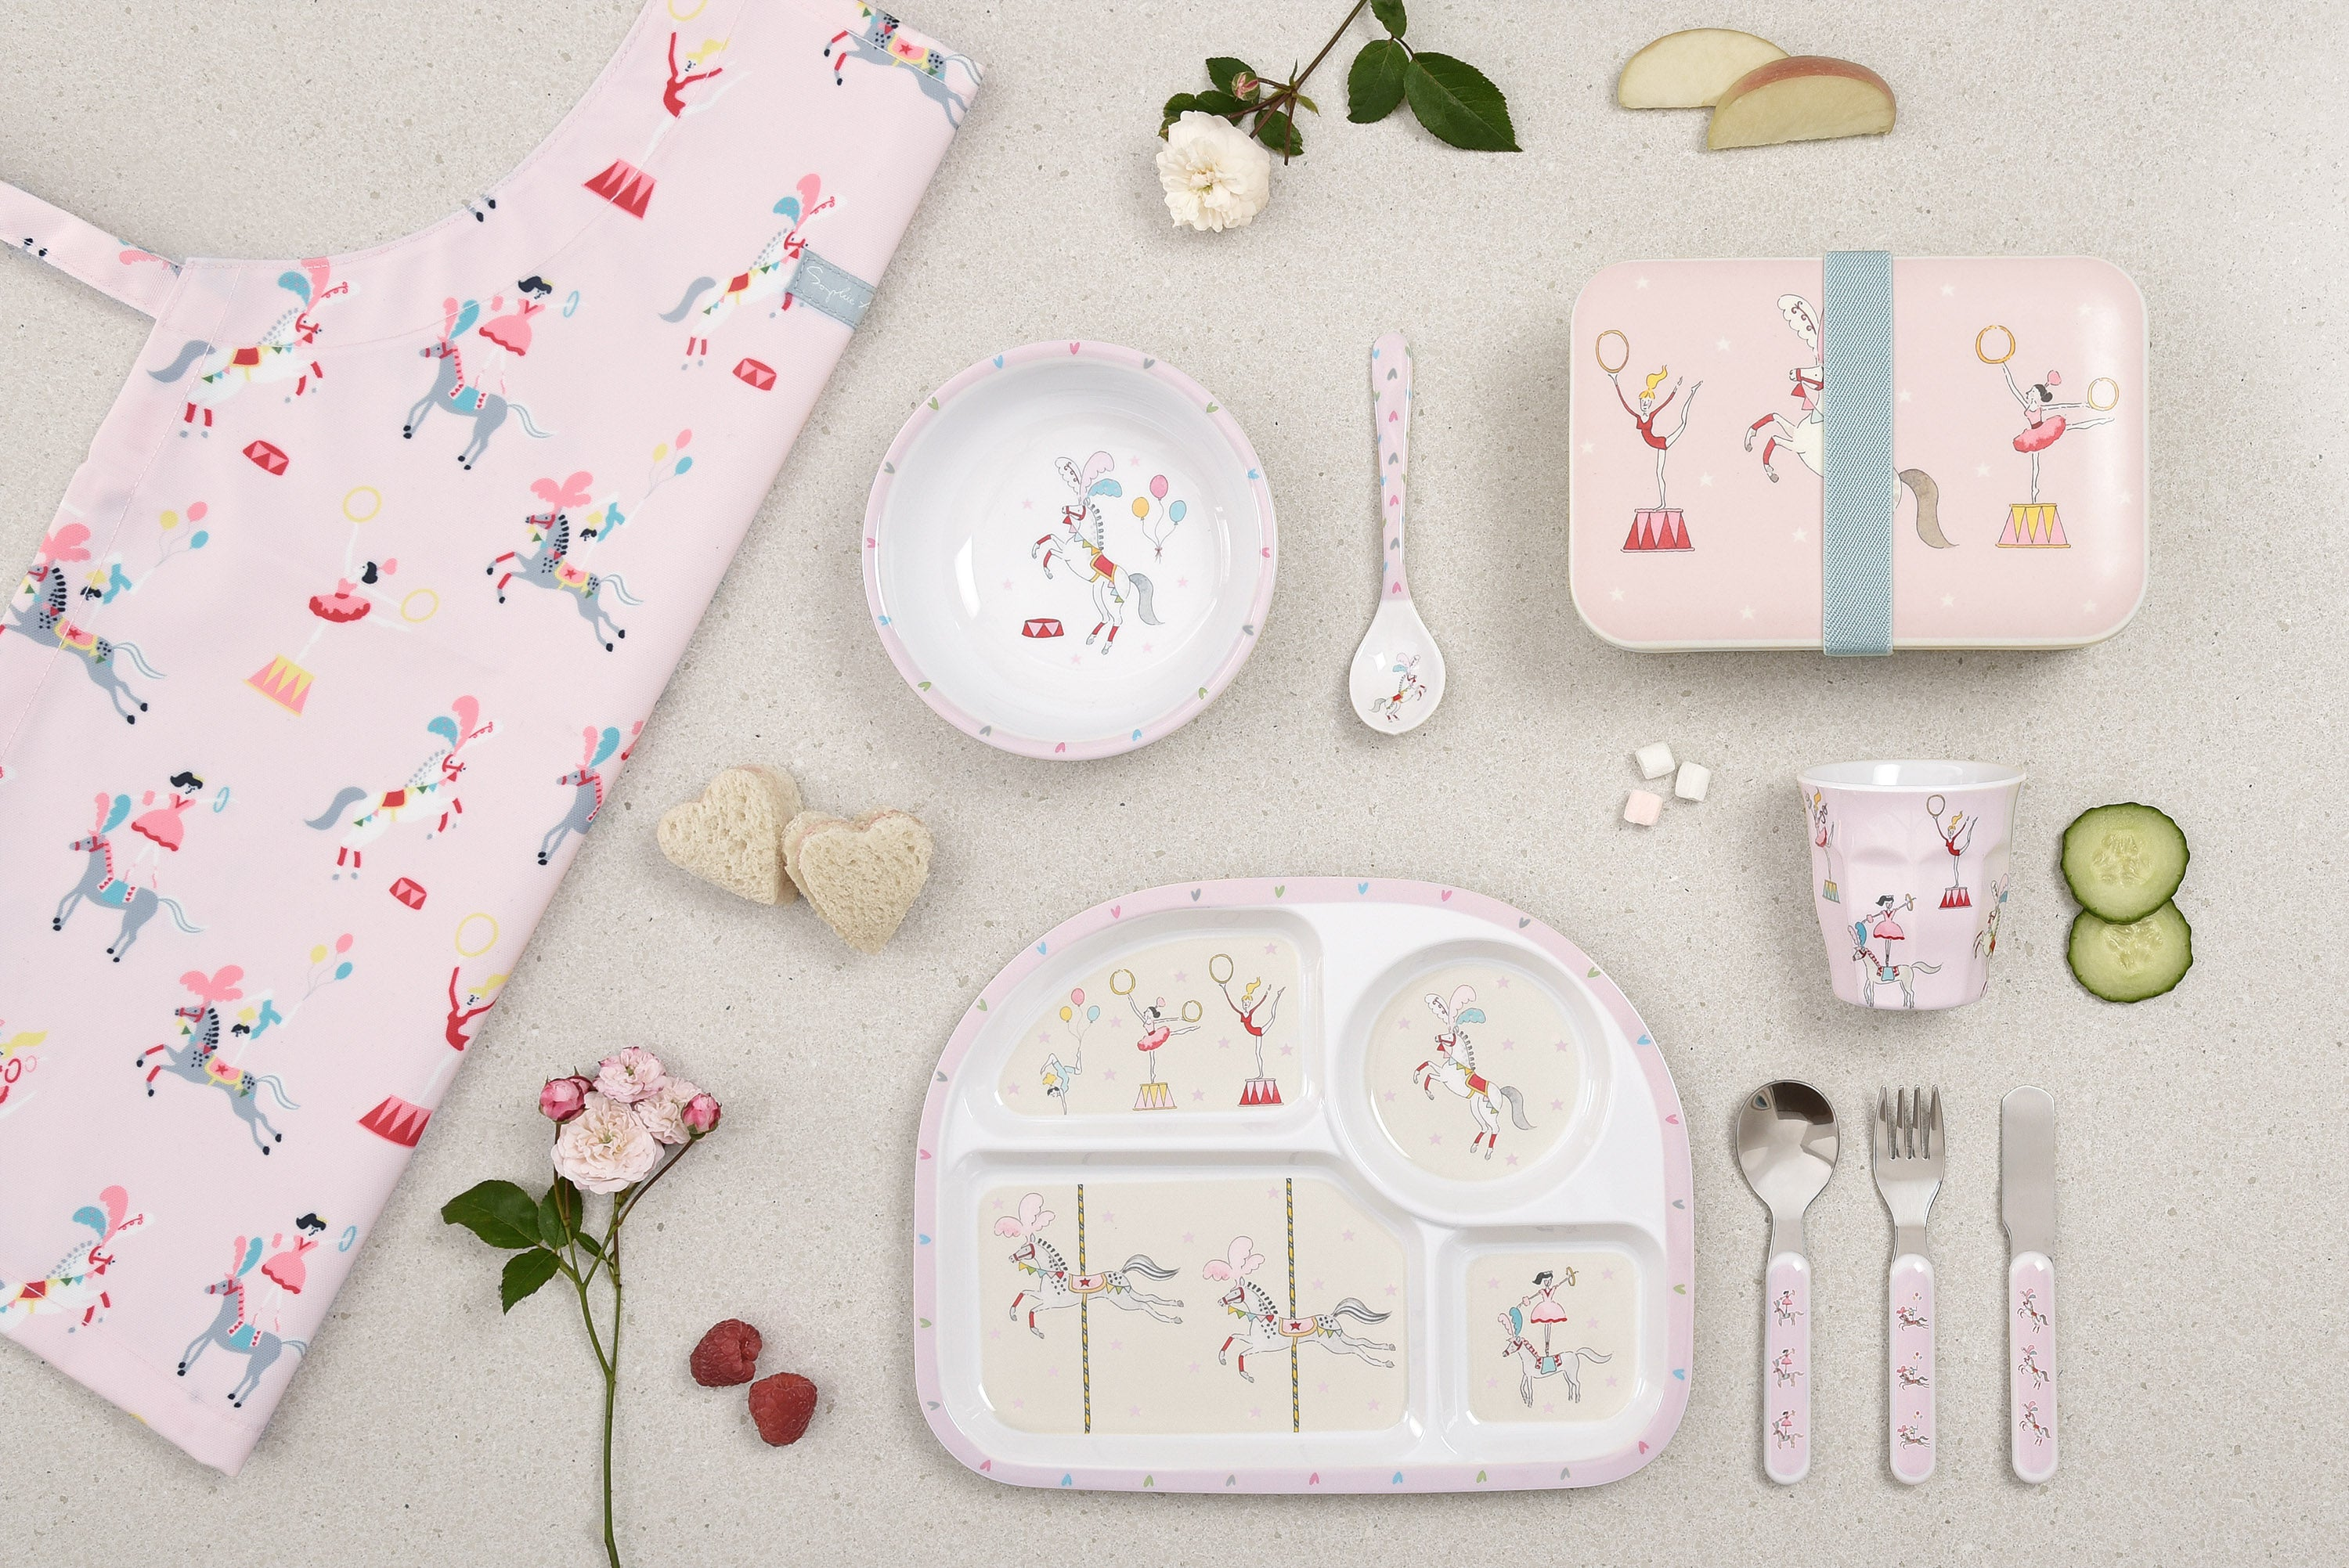 Kids apron and mealtime by Sophie Allport with melamine plate, bowl, beaker, lunch box and spoon